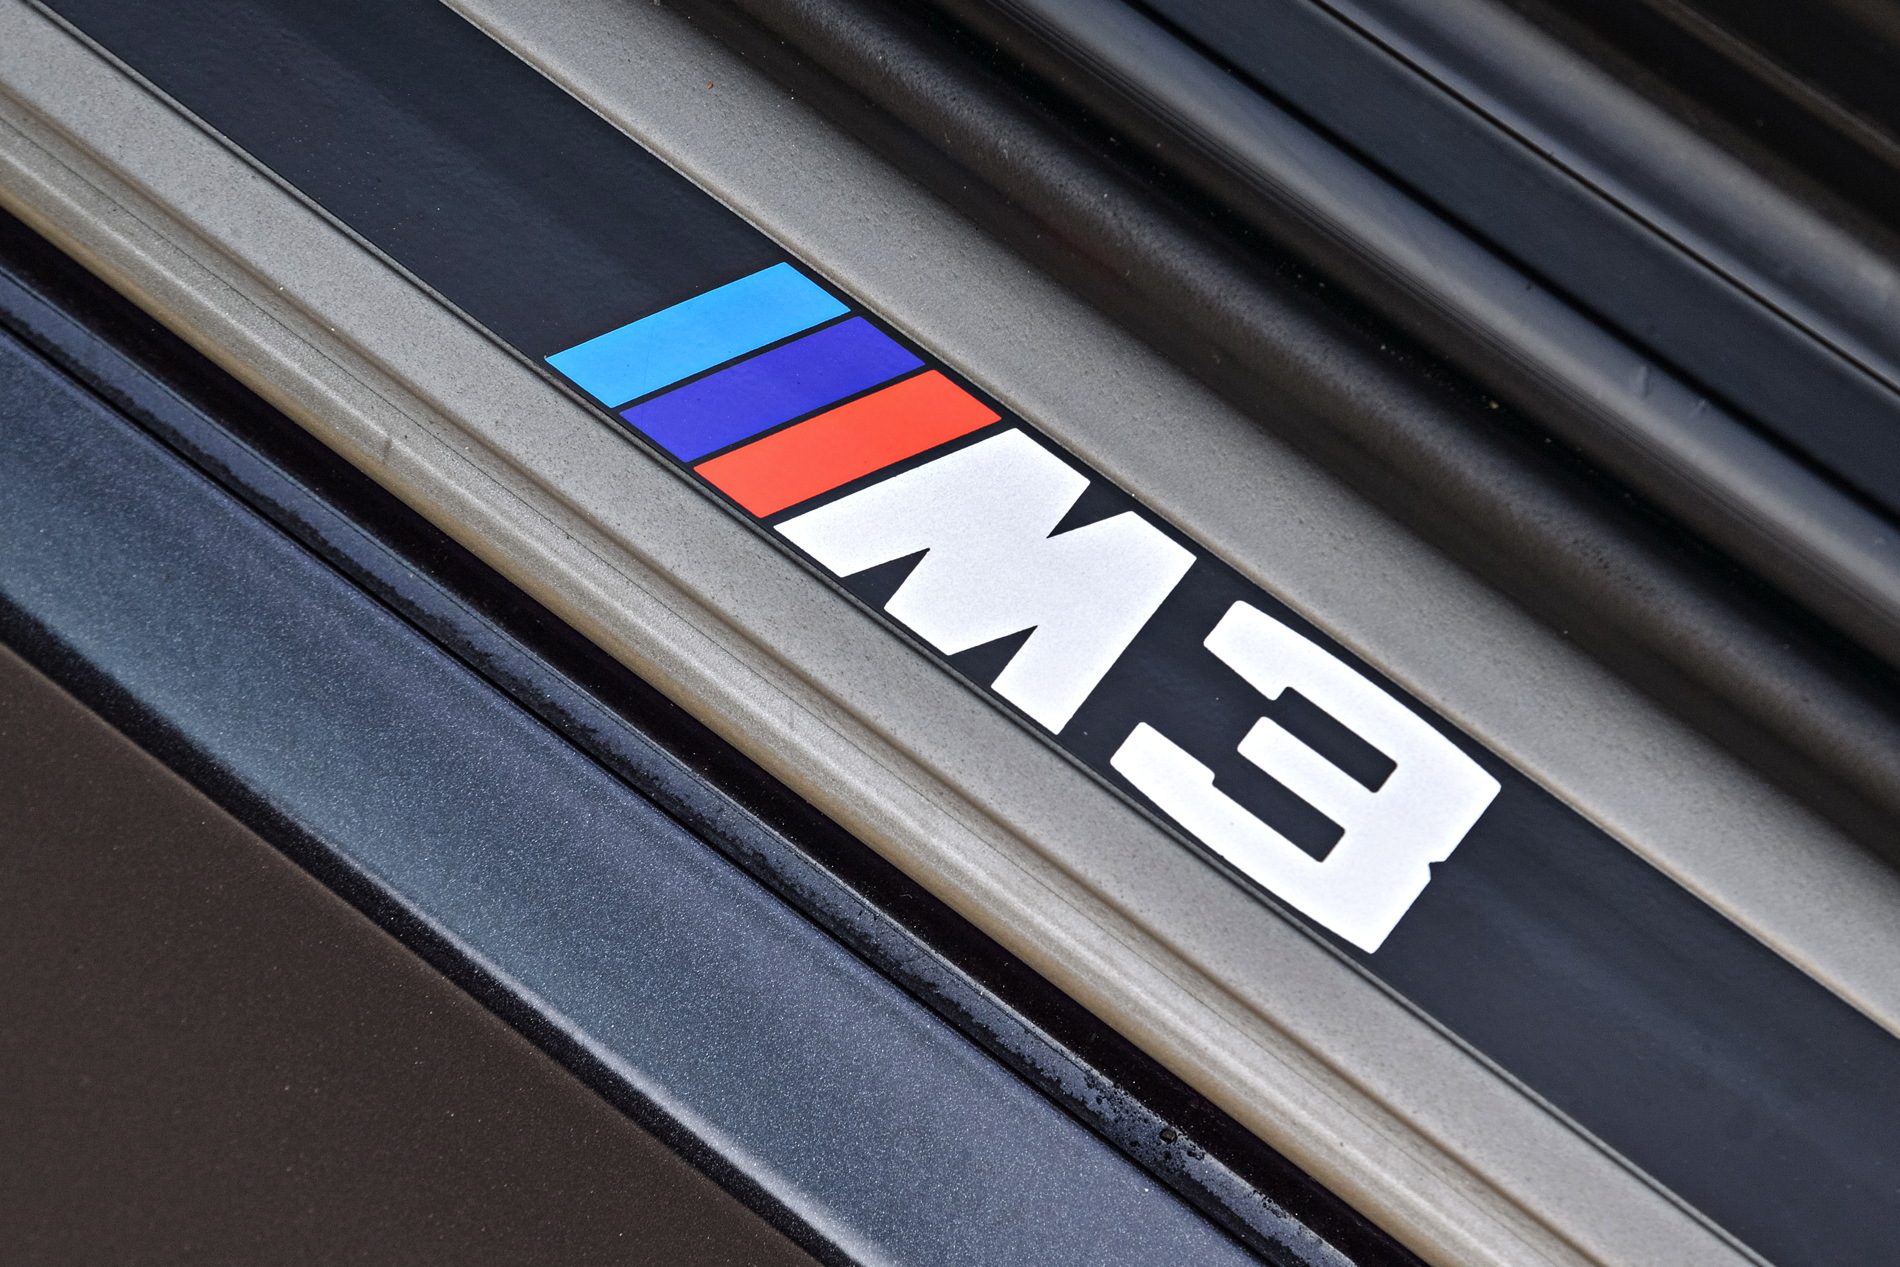 Video: Choosing the Best BMW M Car of All Time